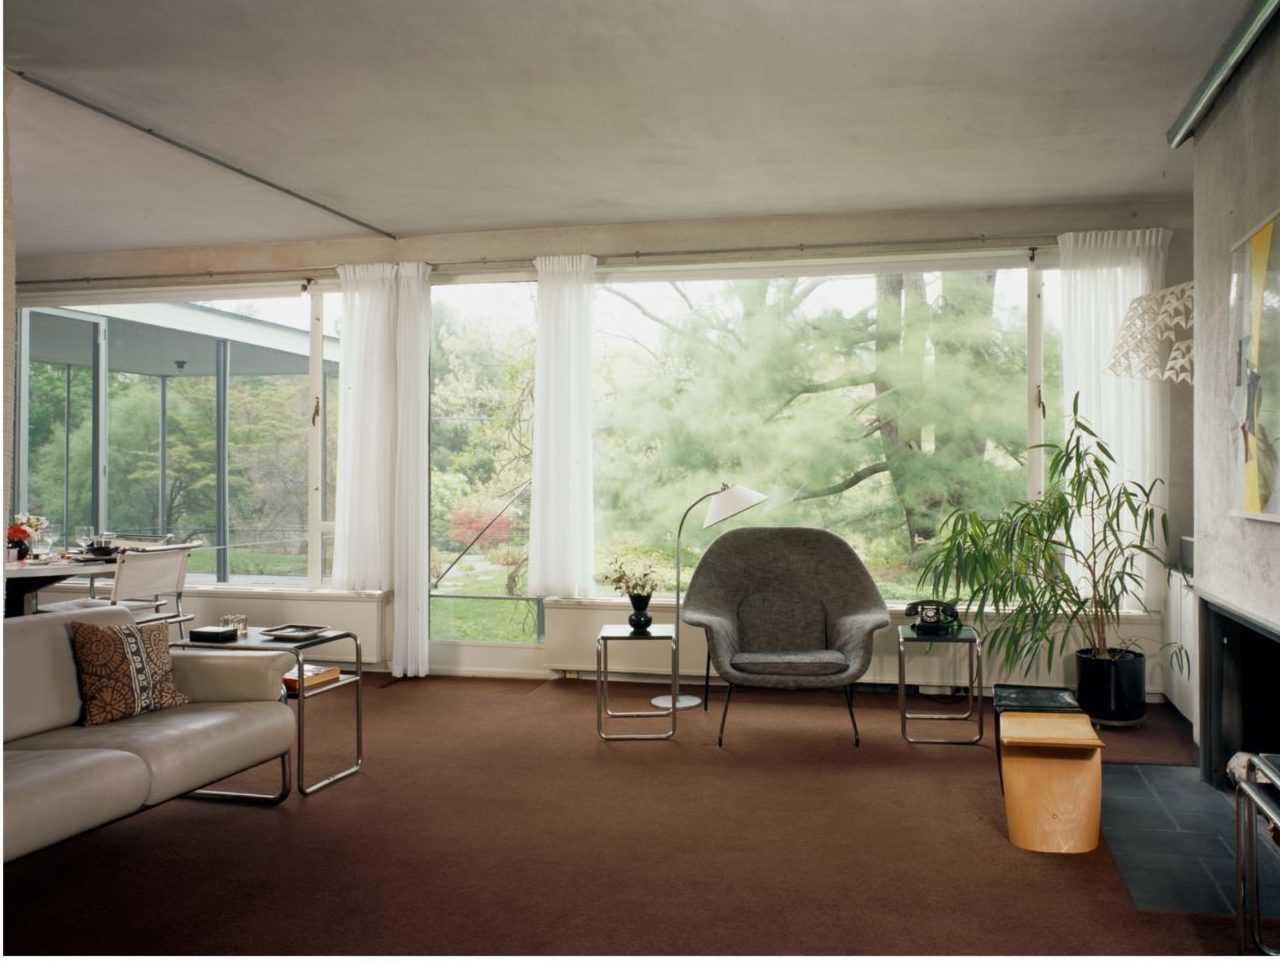 Bauhaus furnishings, oversized windows and an open floor plan could feel stark and austere, yet at the Gropius House the living and dining areas feel cozy and personal.